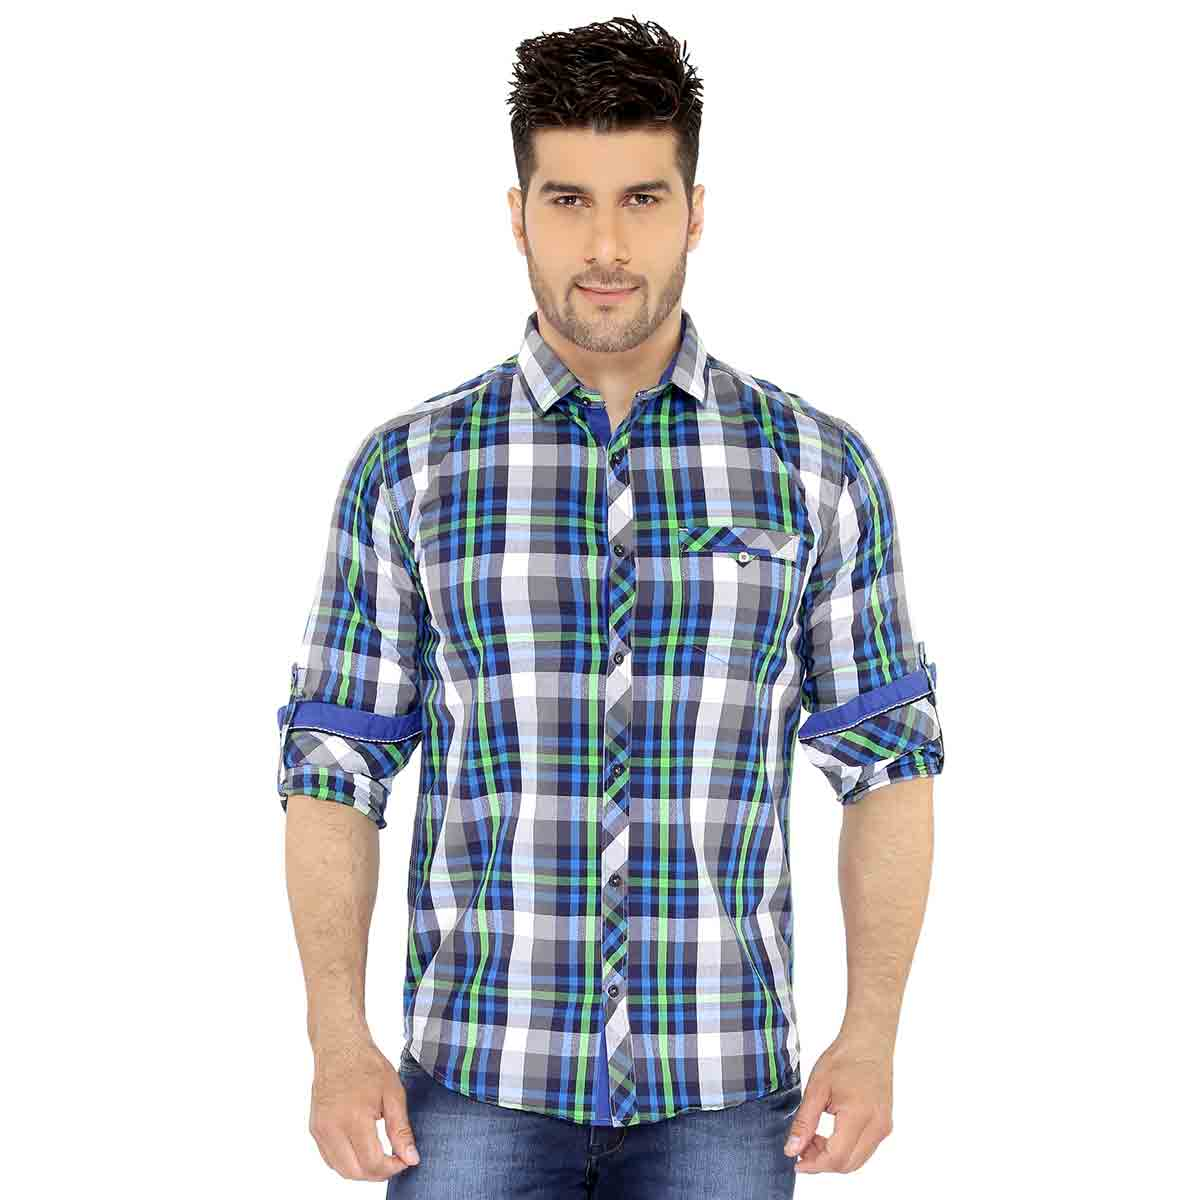 Green & Blue Checks Casual Shirt